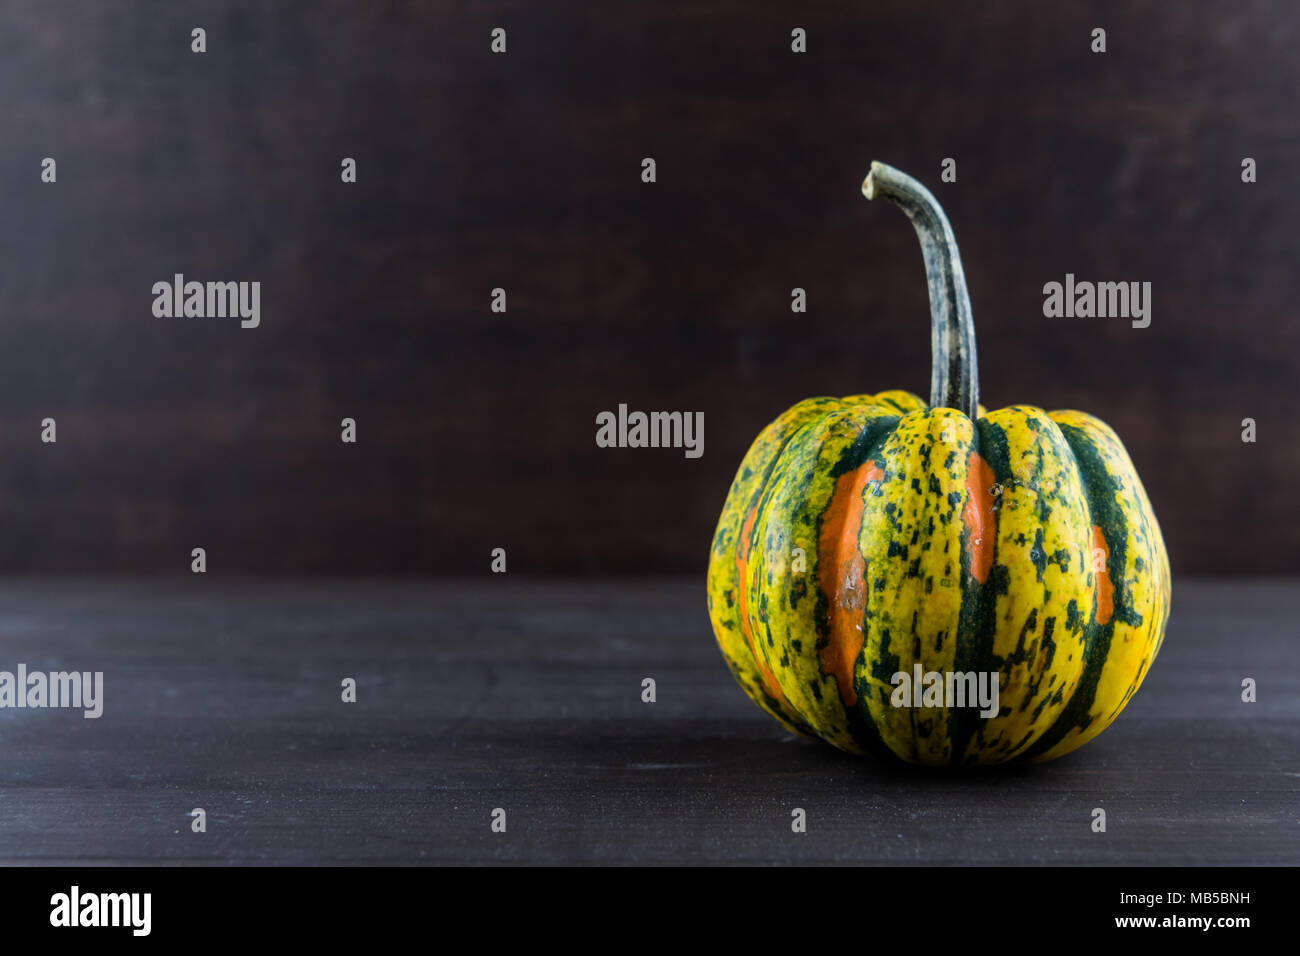 Acorn Squash on Dark Background with Copy Space to left - Stock Image